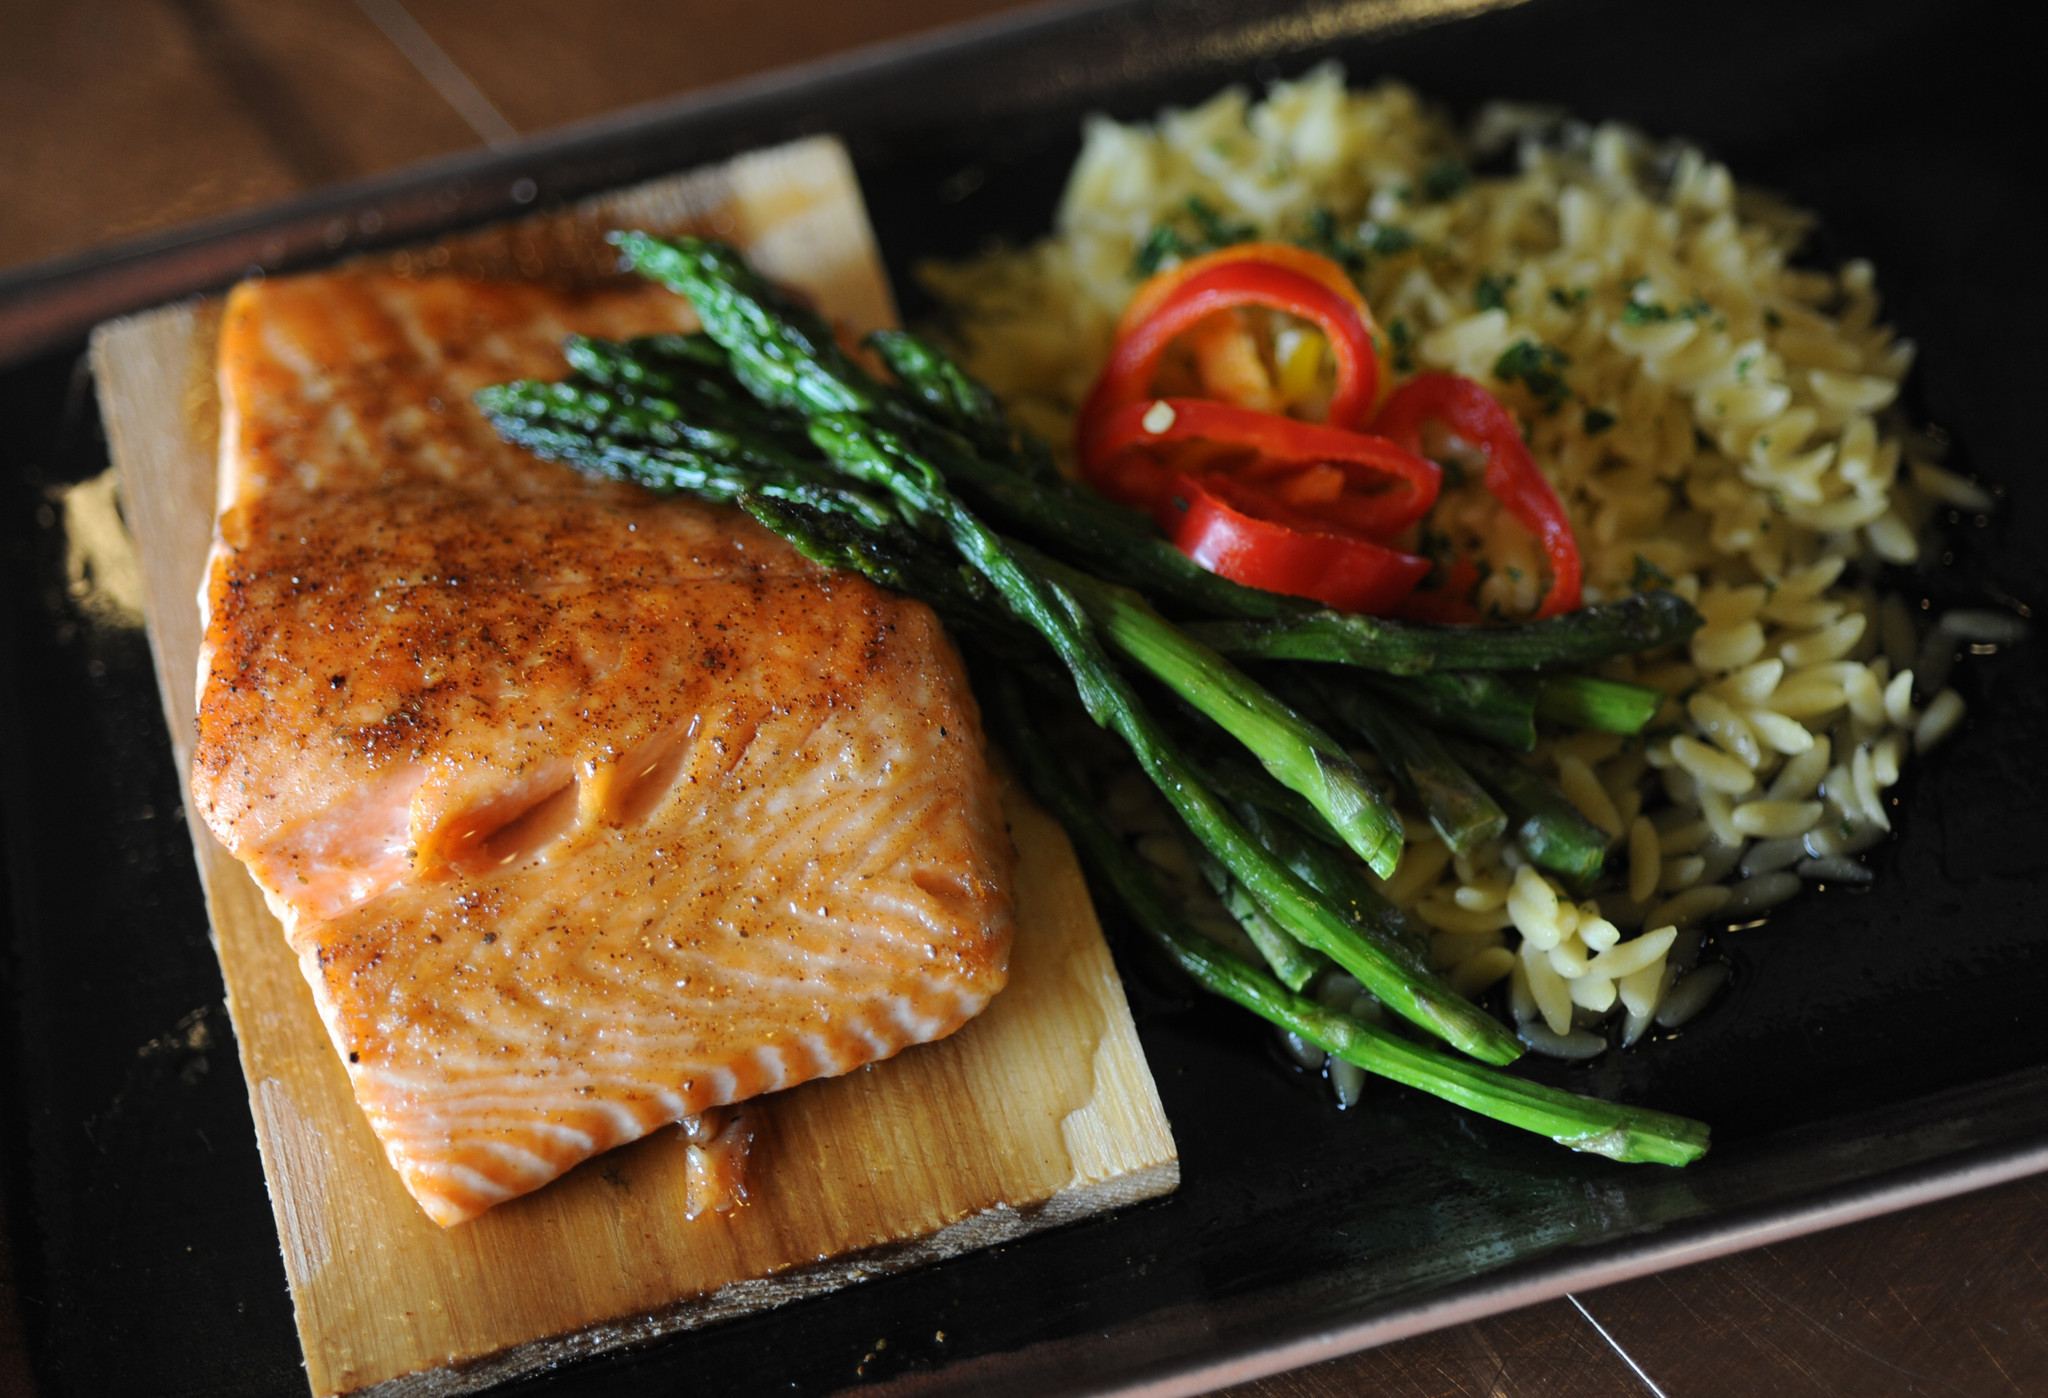 New food items at Oriole Park, and some returning favorites [Pictures] - Cedar plank salmon